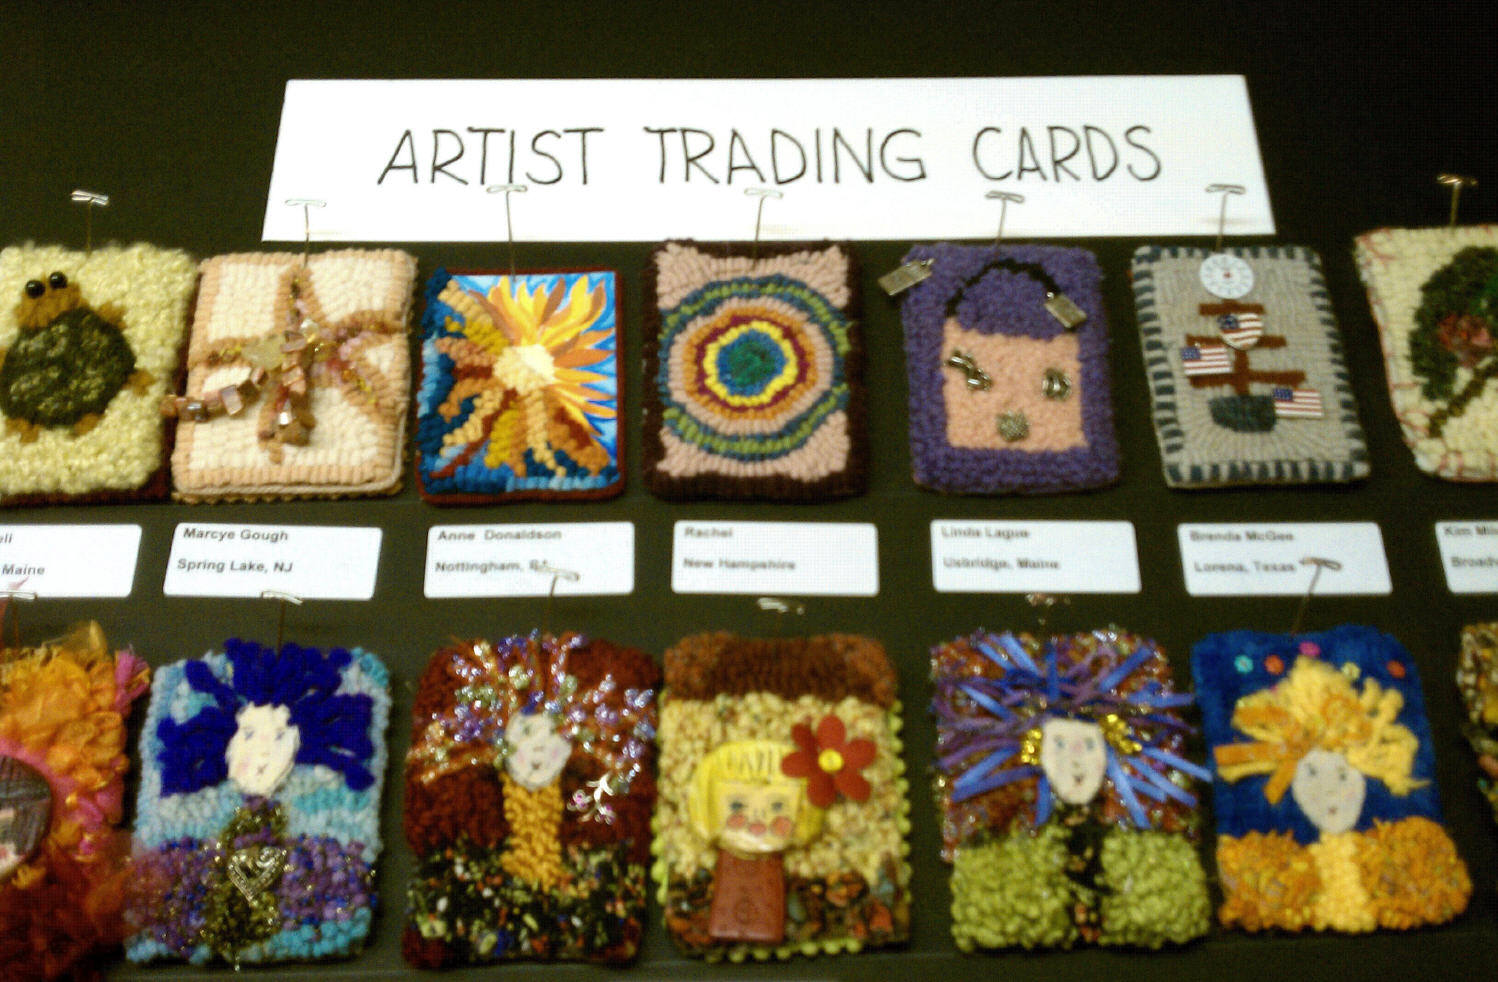 I Always Enjoy Going To The Fall Hooked Rug Show In Bothel Washington It Is A Small Venue With Lots Of Creative S Who Their Supplies And